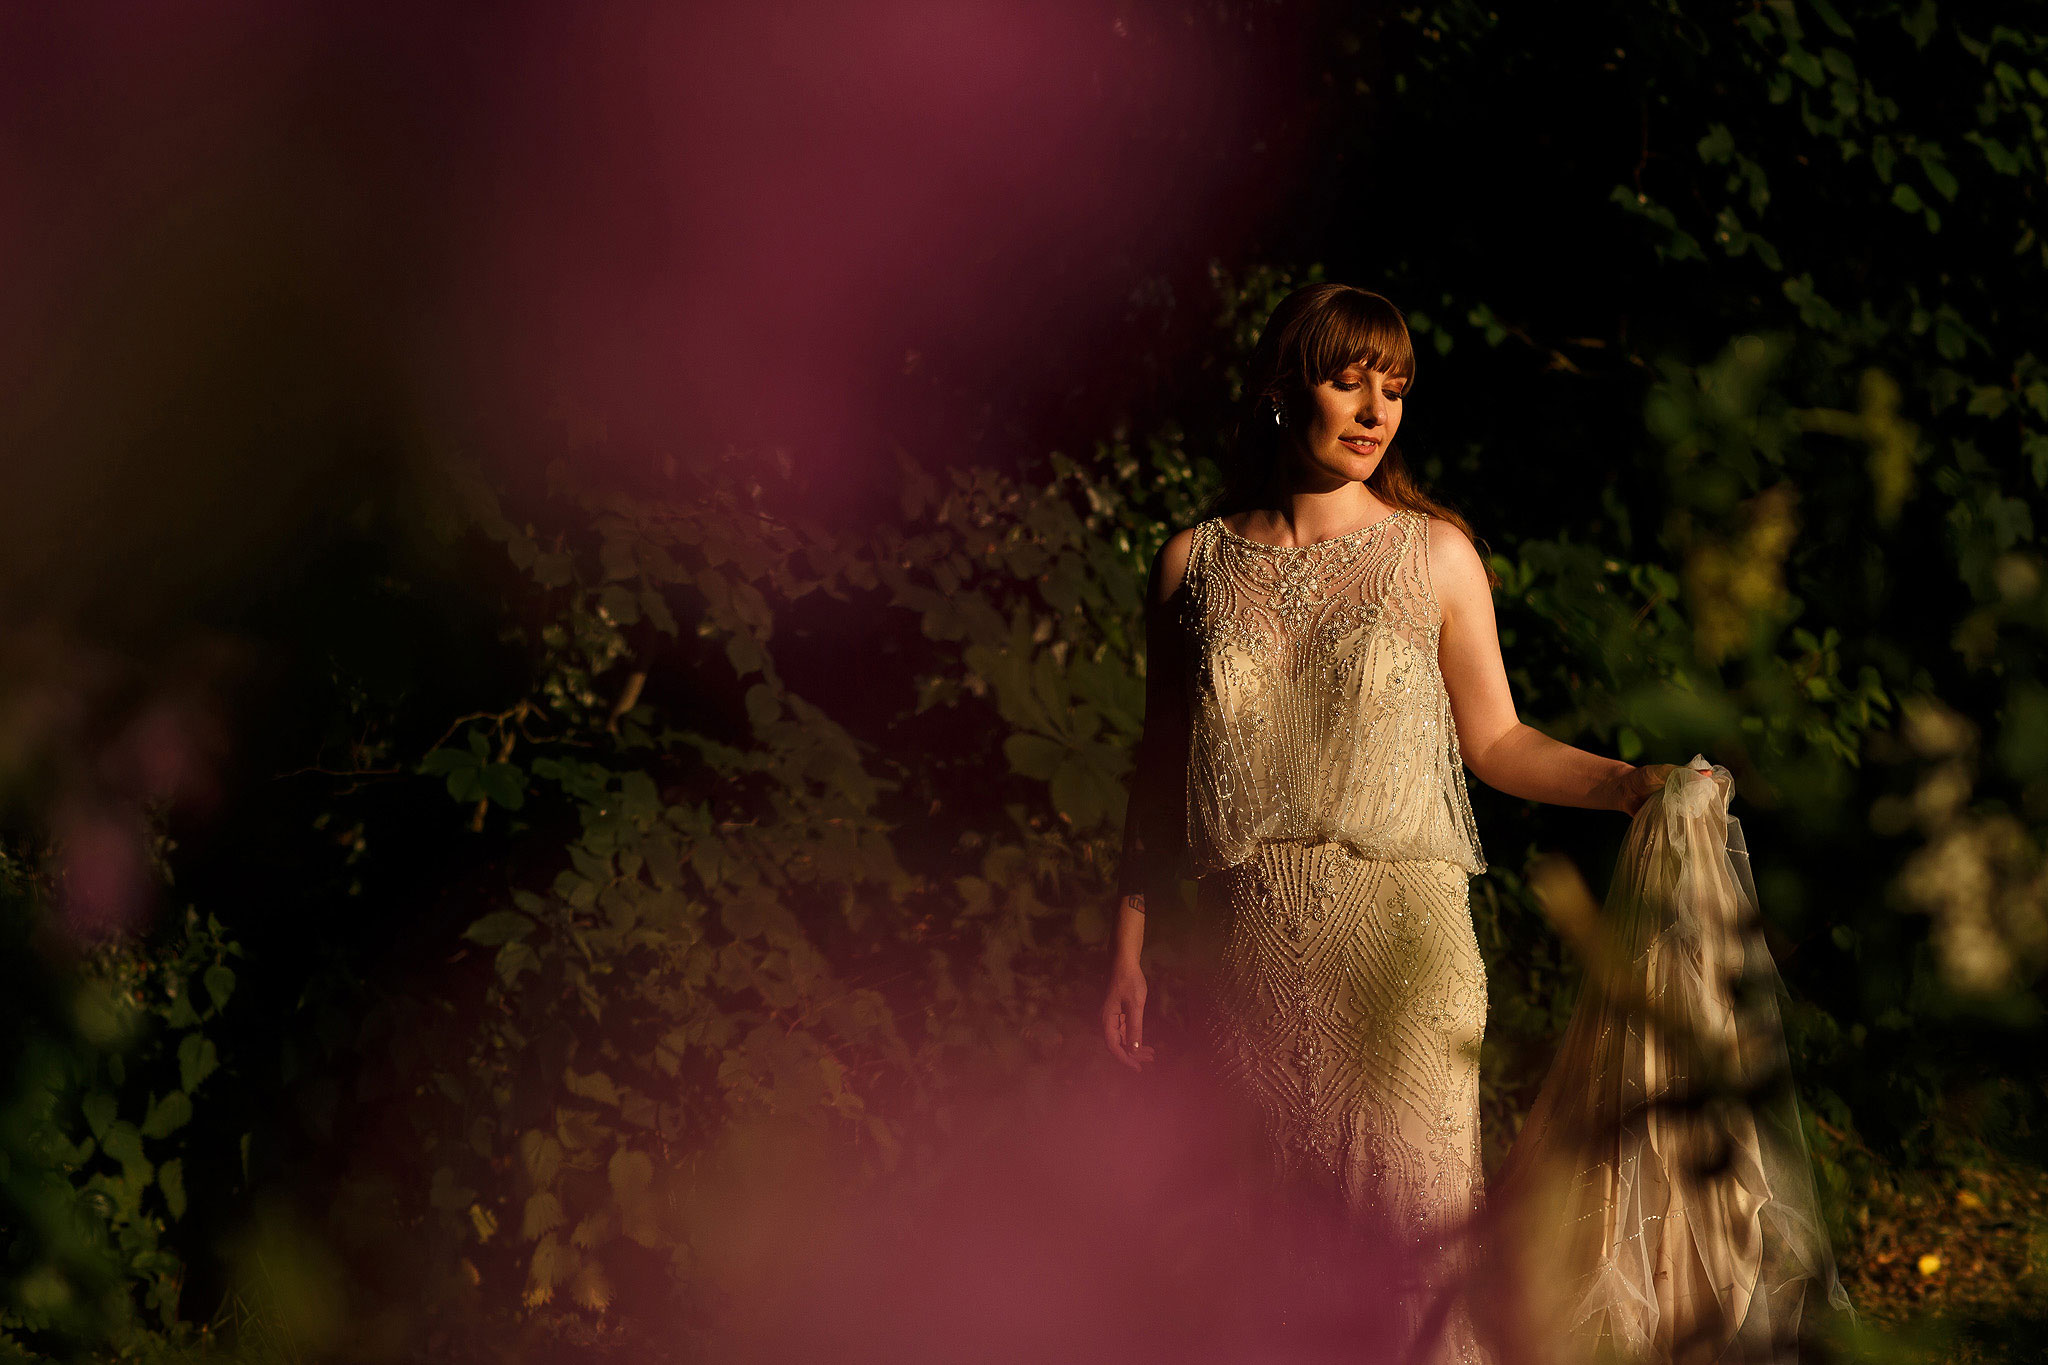 Bride wearing beautiful beaded floor length wedding gown in beautiful sunlight during the wedding day portraits - The Villa at Wrea Green Wedding Photography - Toni Darcy Photography